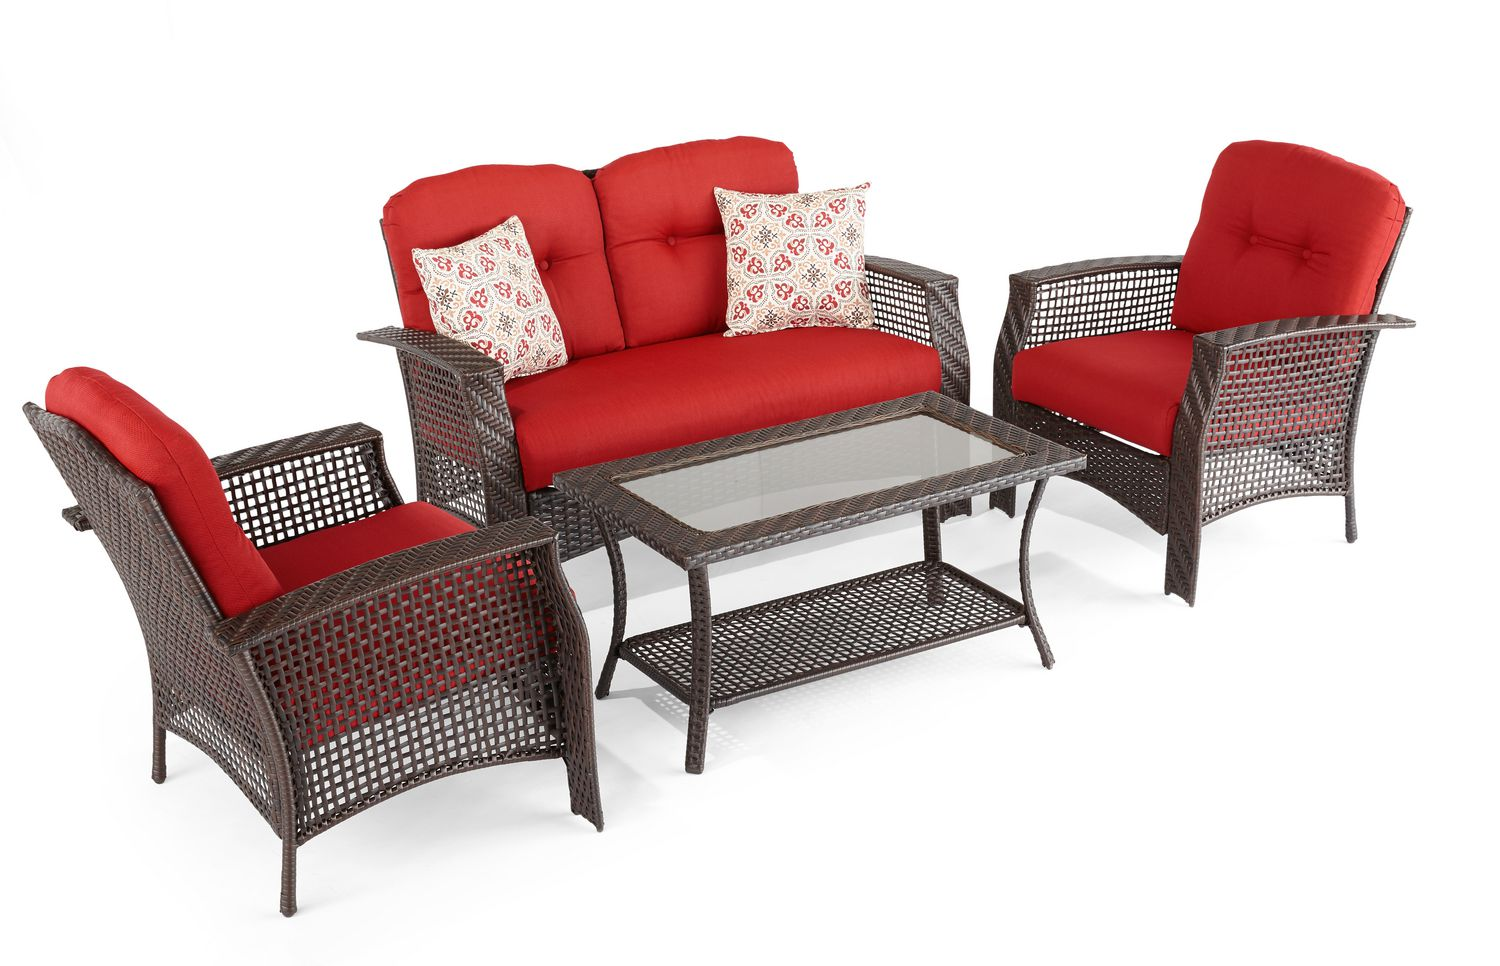 Hometrends Tuscany Conversation Set Walmart 28 Images Hometrends Tuscany 4 Sectional Set